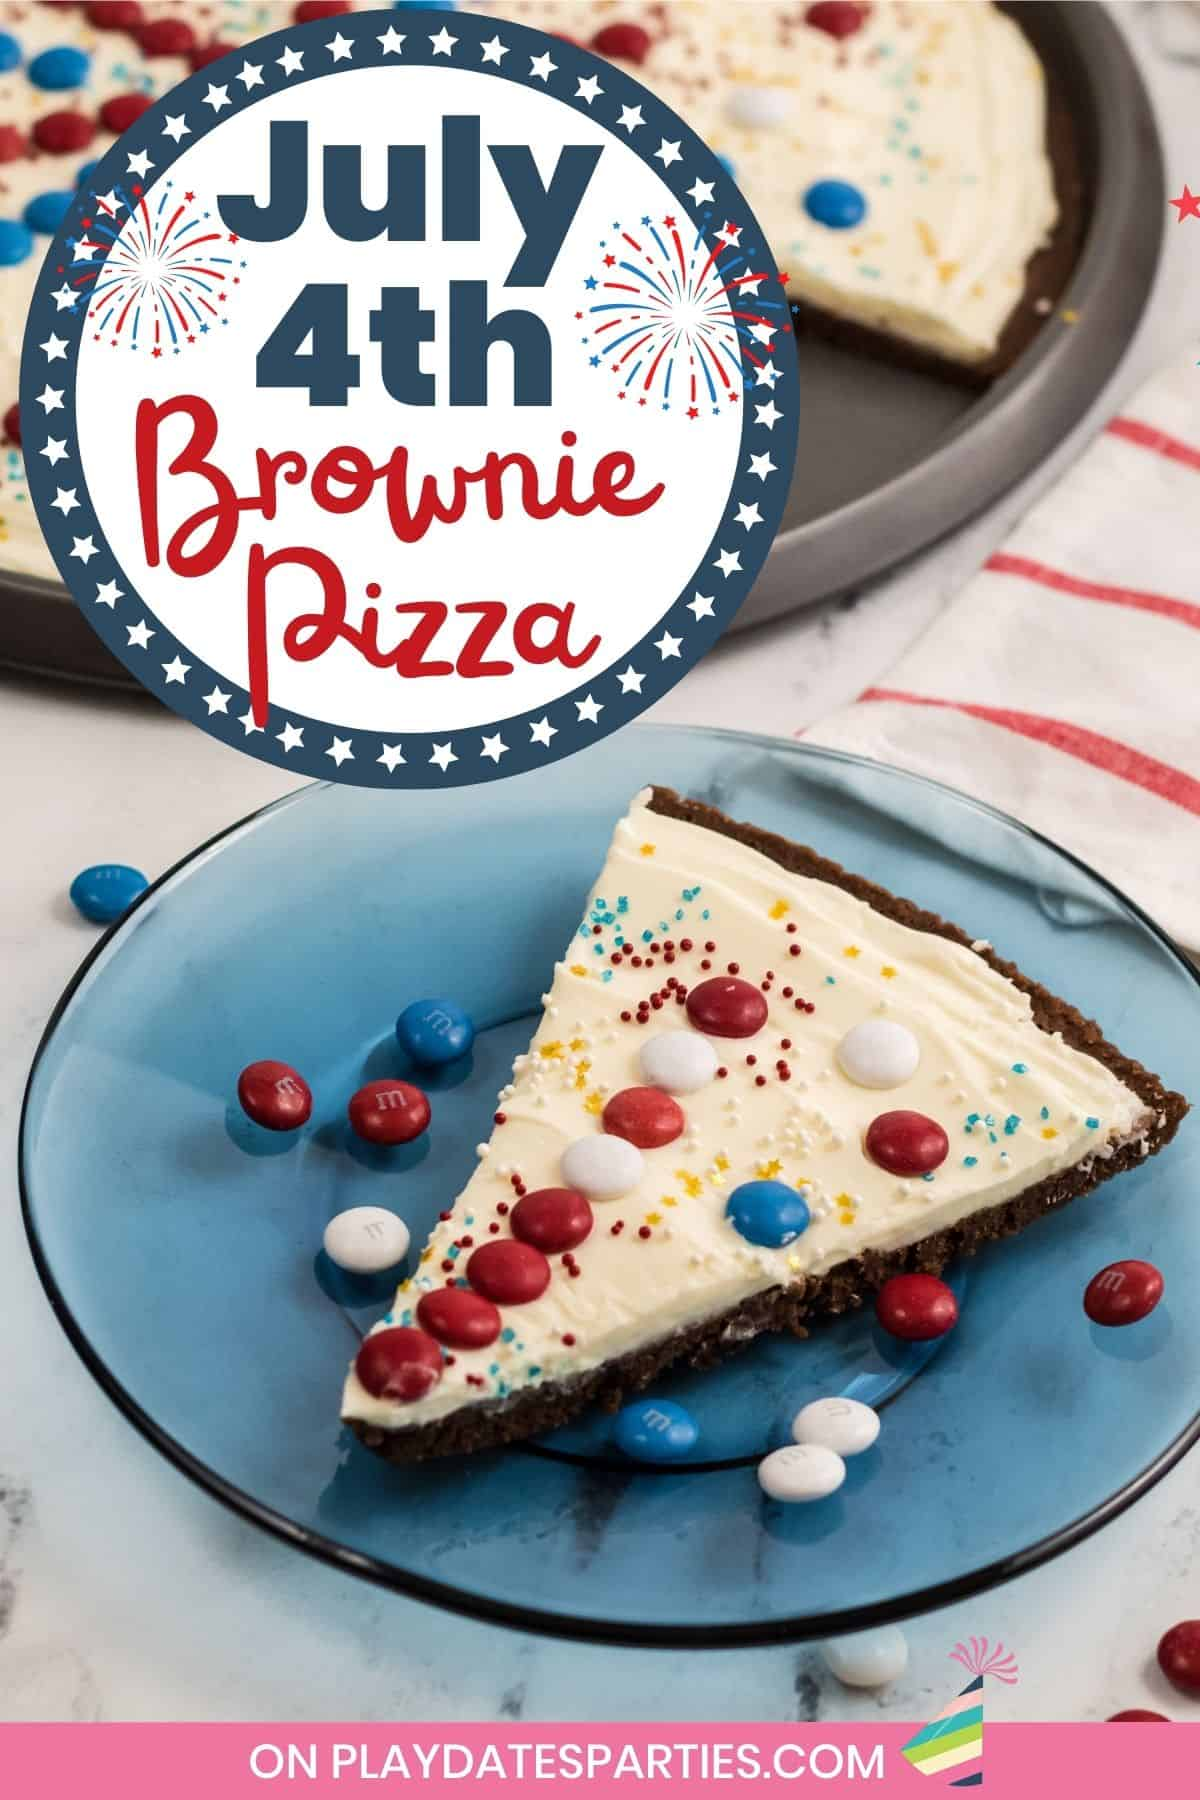 Close up photo of a slice of dessert on a blue plate with red, white, and blue candies with a text overlay that says July 4th Brownie Pizza